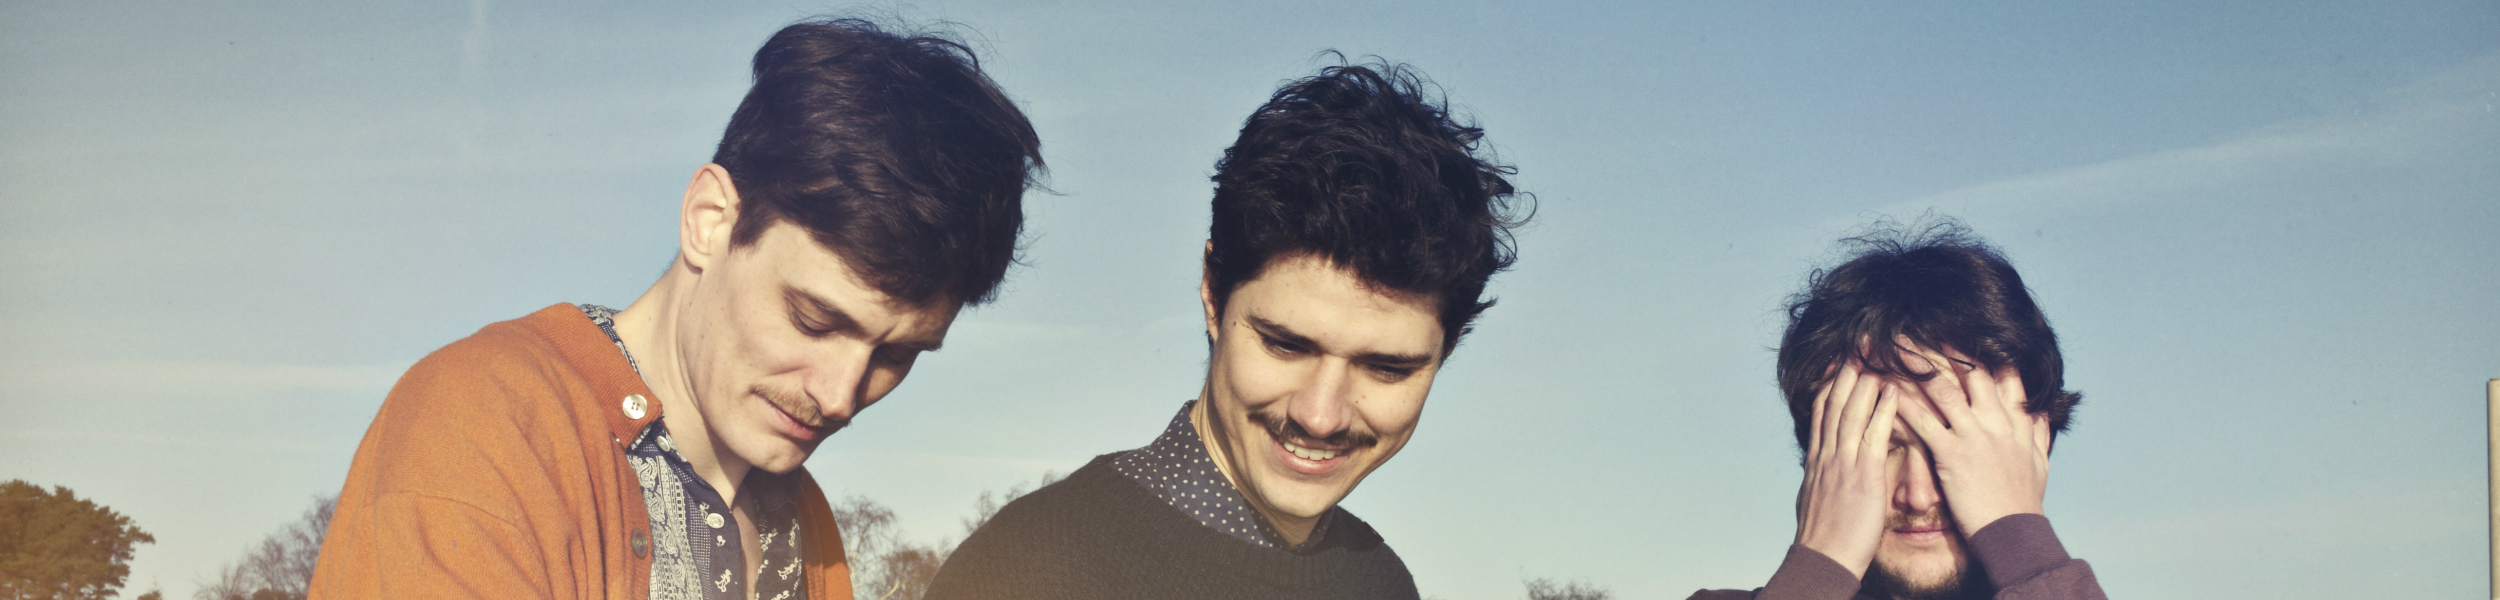 Efterklang - Efterklang To Premiere New Album at Sydney Opera House